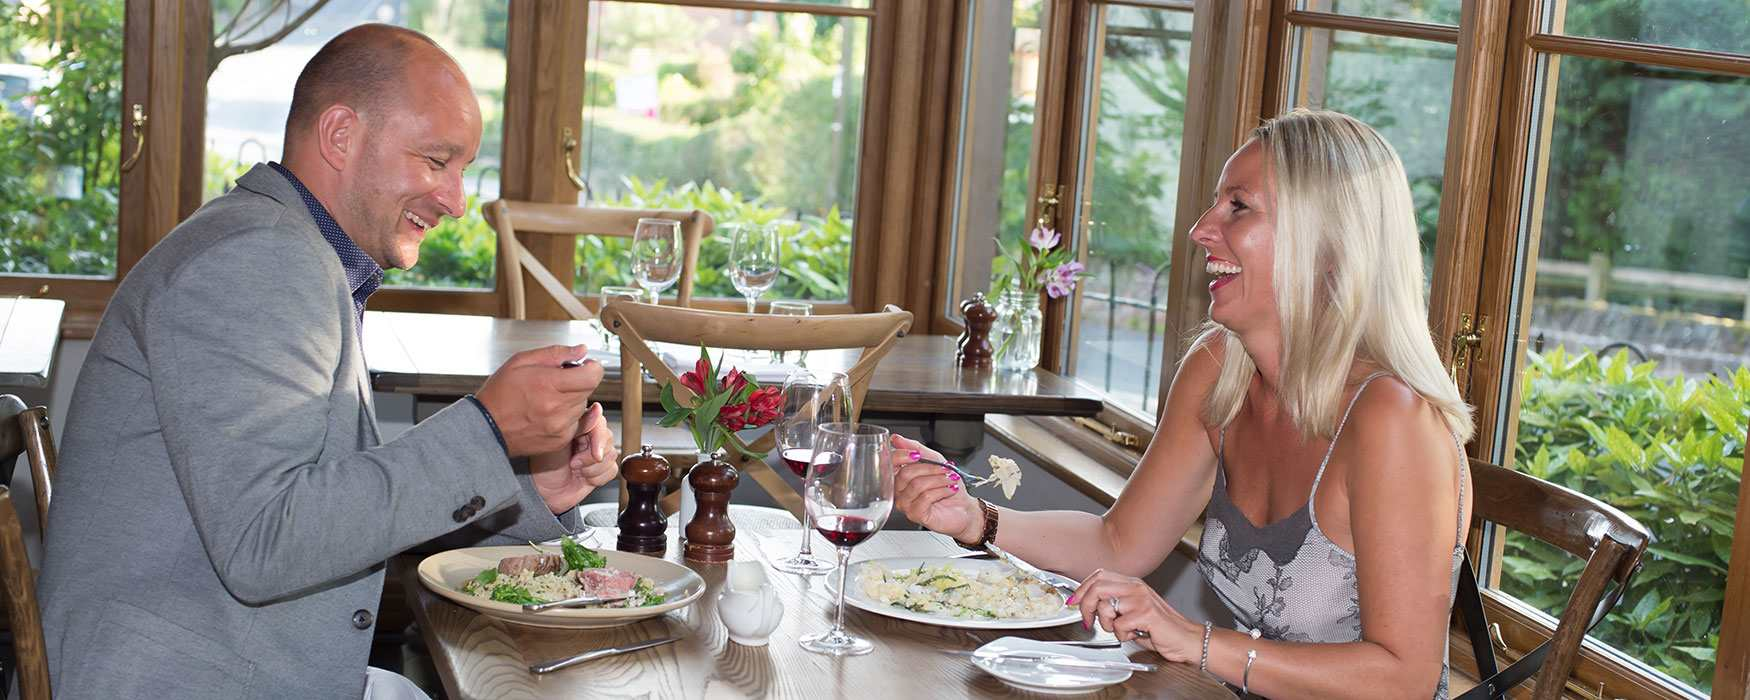 Couple enjoy a romantic meal at The Duncombe Arms, Ellastone